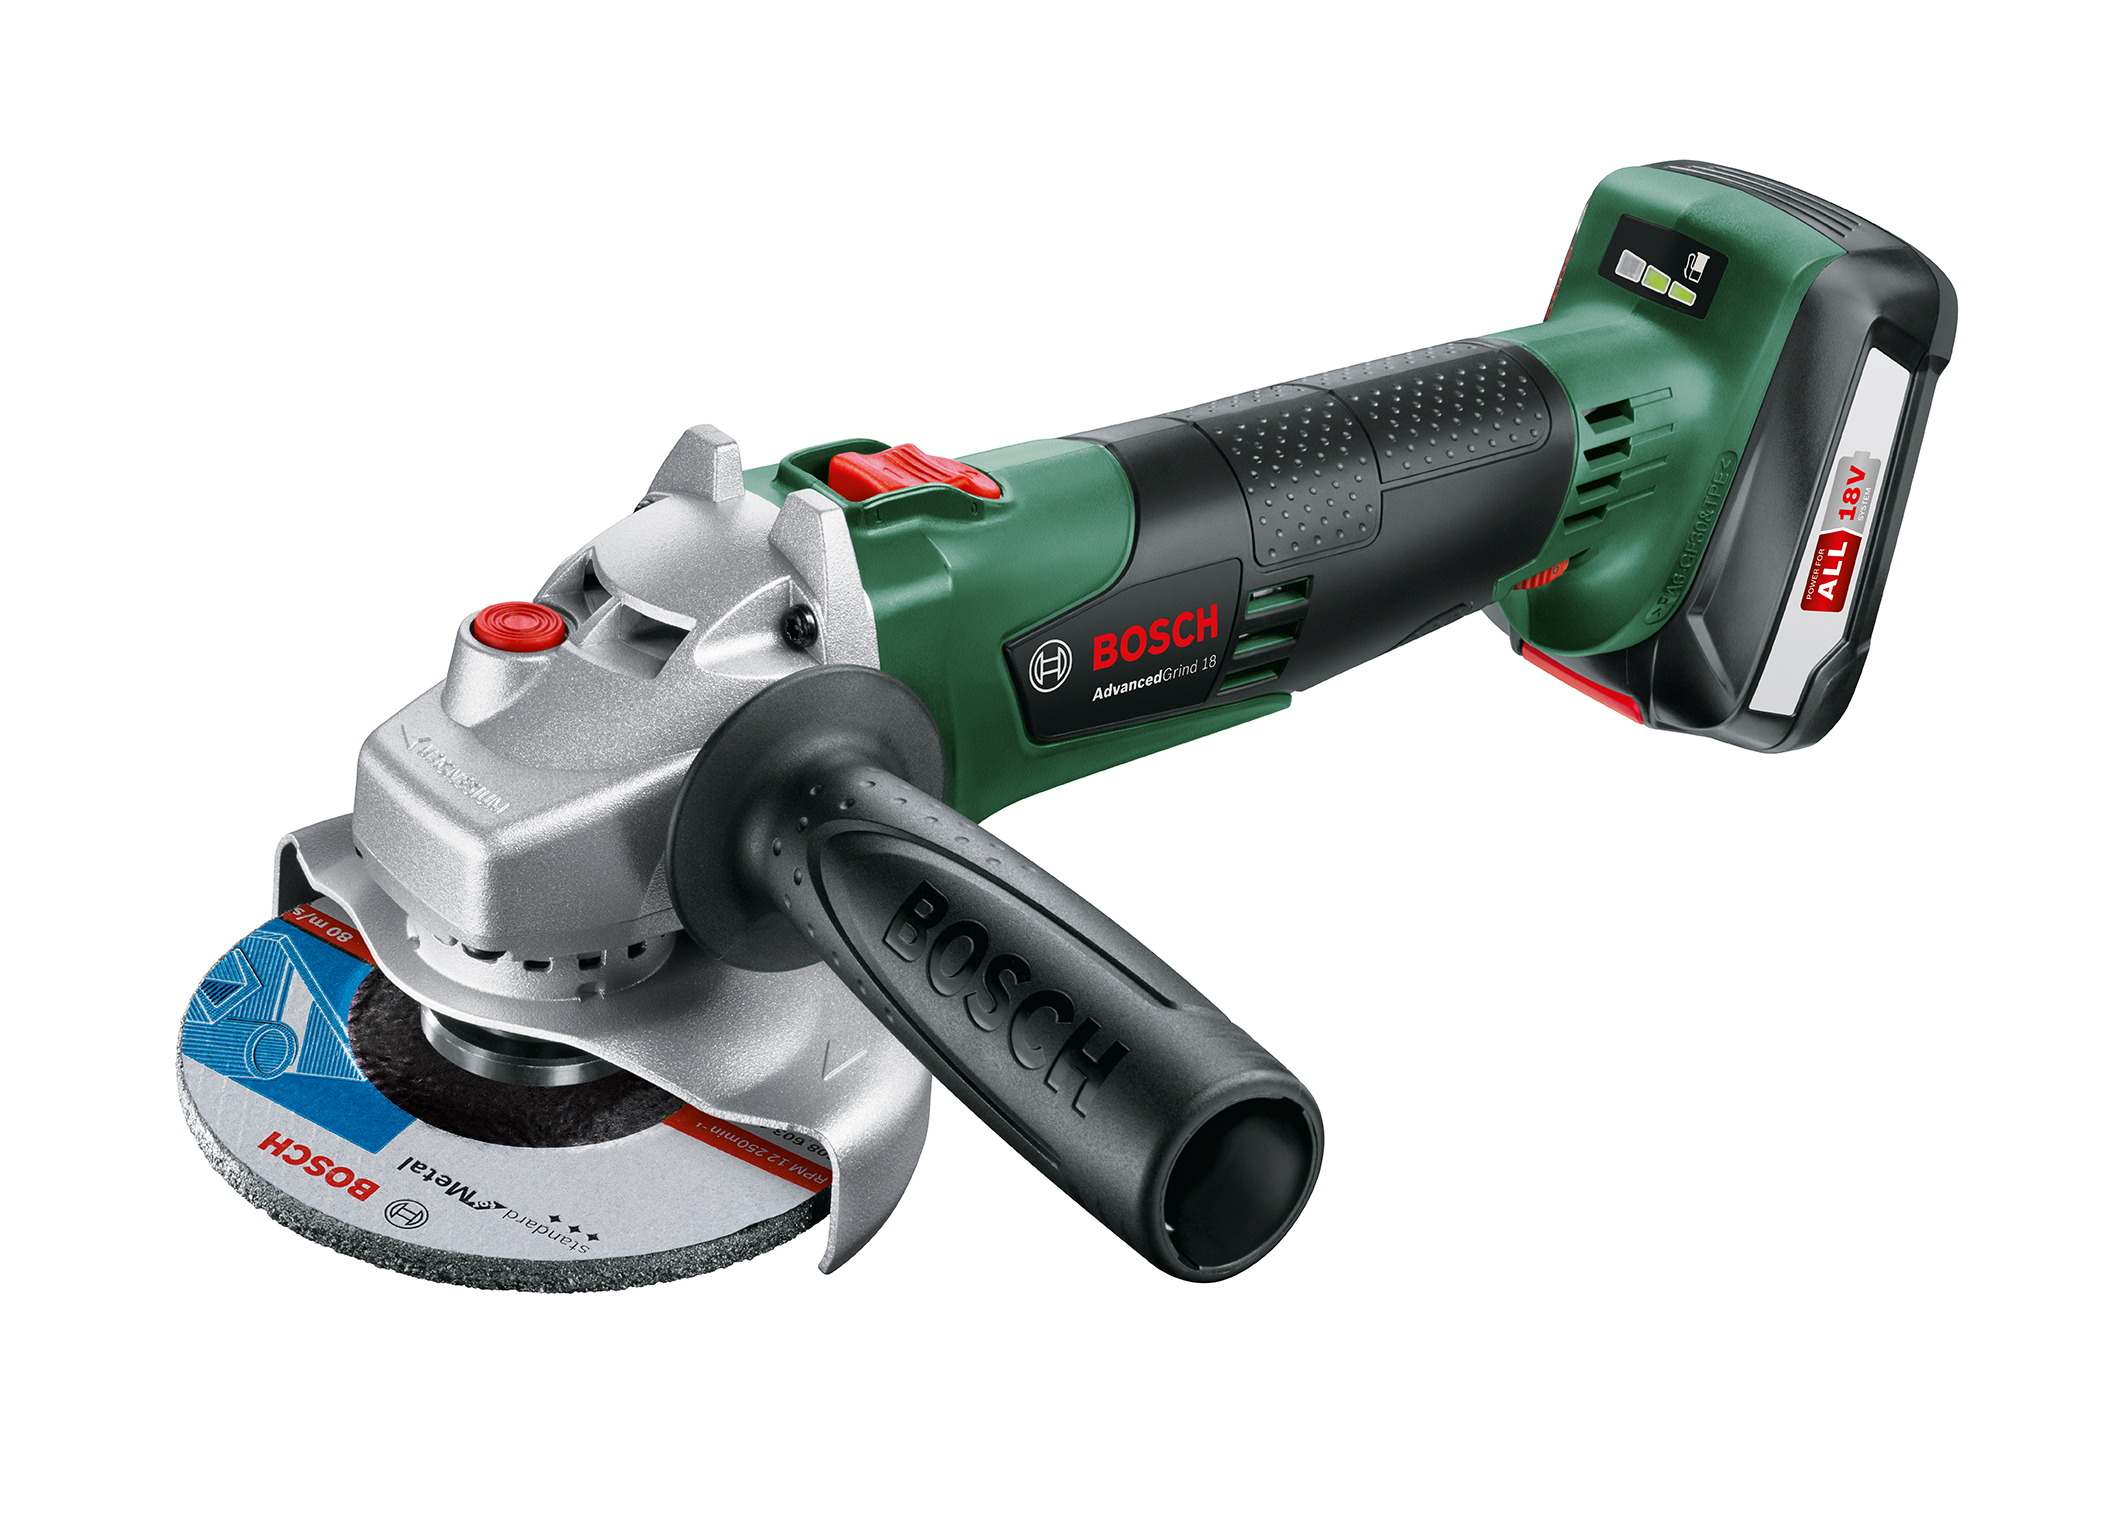 Flexibility with maximum control and high user protection: AdvancedGrind 18 from Bosch for do-it-yourselfers